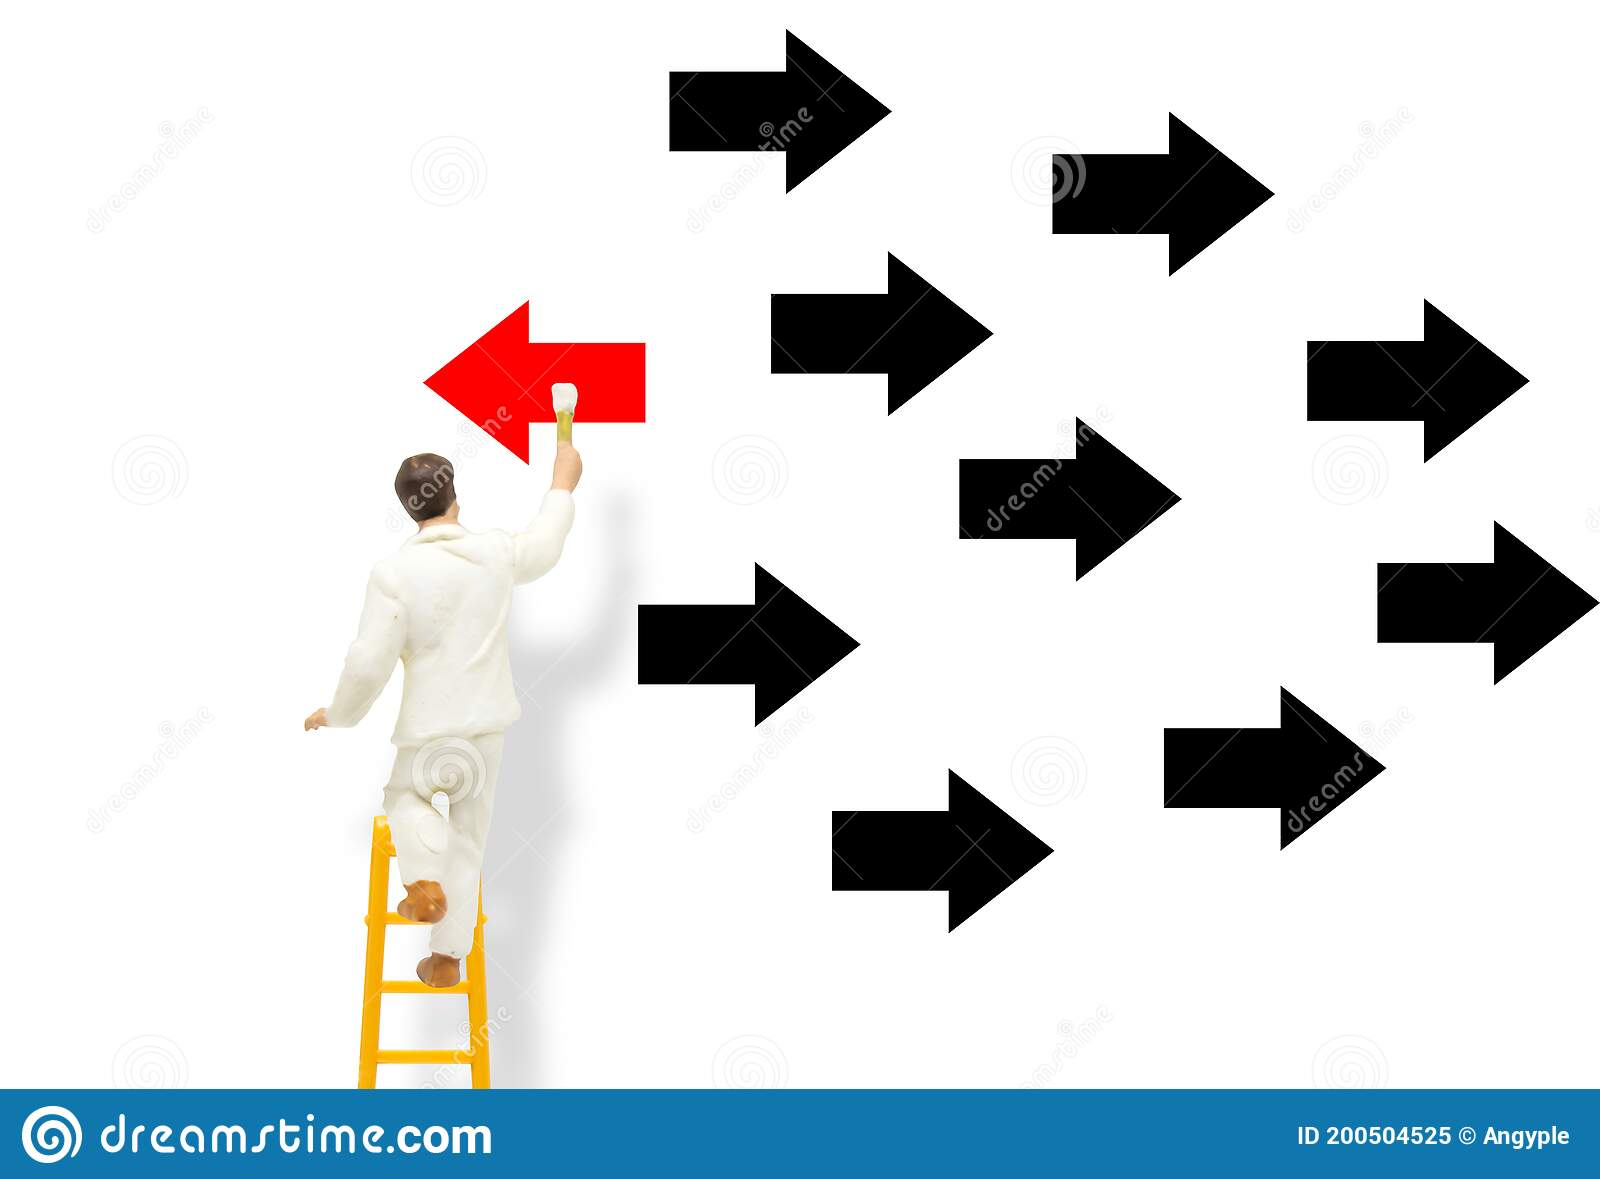 Miniature People Figure Model As Painter Stand On Ladder And Painting Red Arrow Facing Opposite Direction Black Arrows Stock Image Image Of Business Drawing 200504525 I need to draw an arrow, preferably using pseudo (:after or :before) elements. dreamstime com